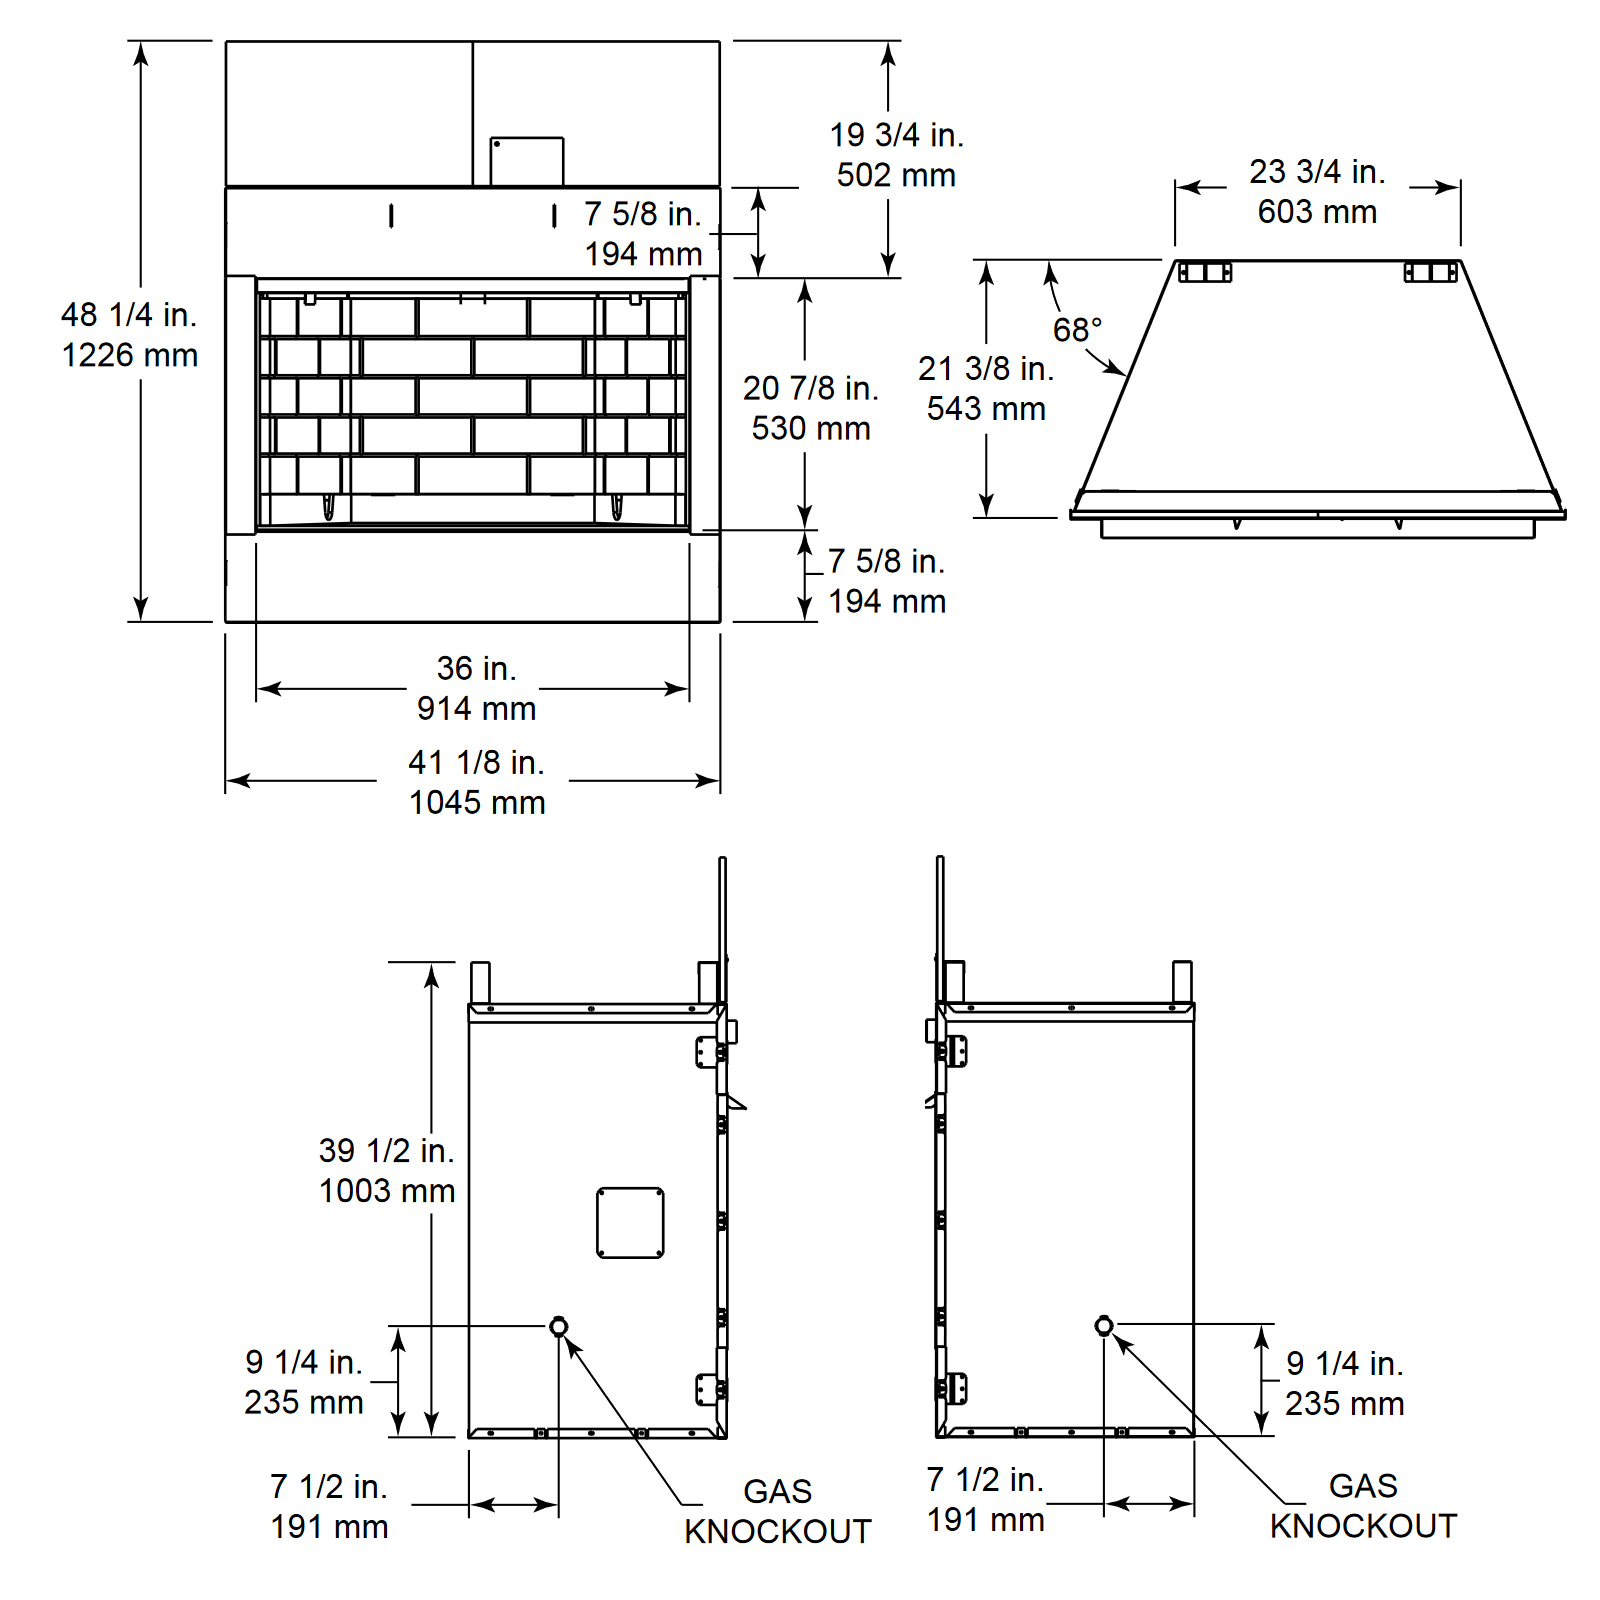 ODVILLAG-36 Technical Drawing 1